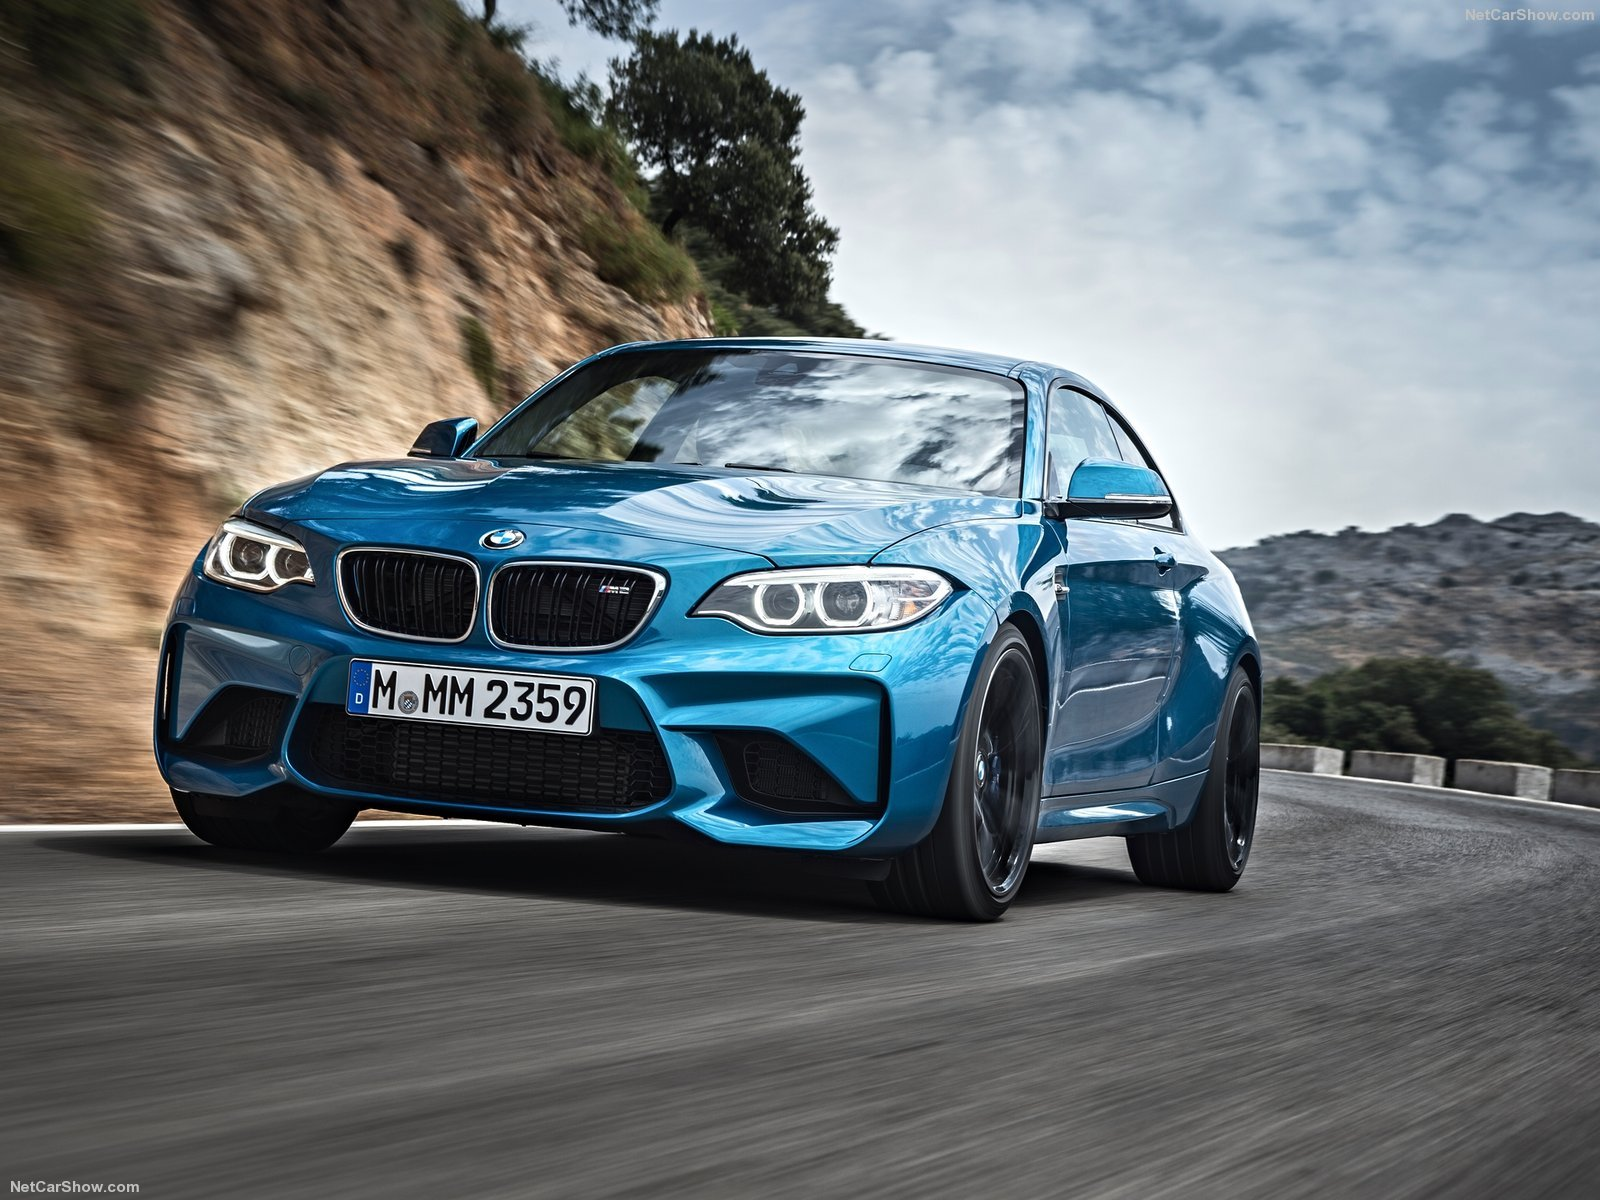 Bmw M2 Coupe Cars 2016 Wallpaper 1600x1200 819345